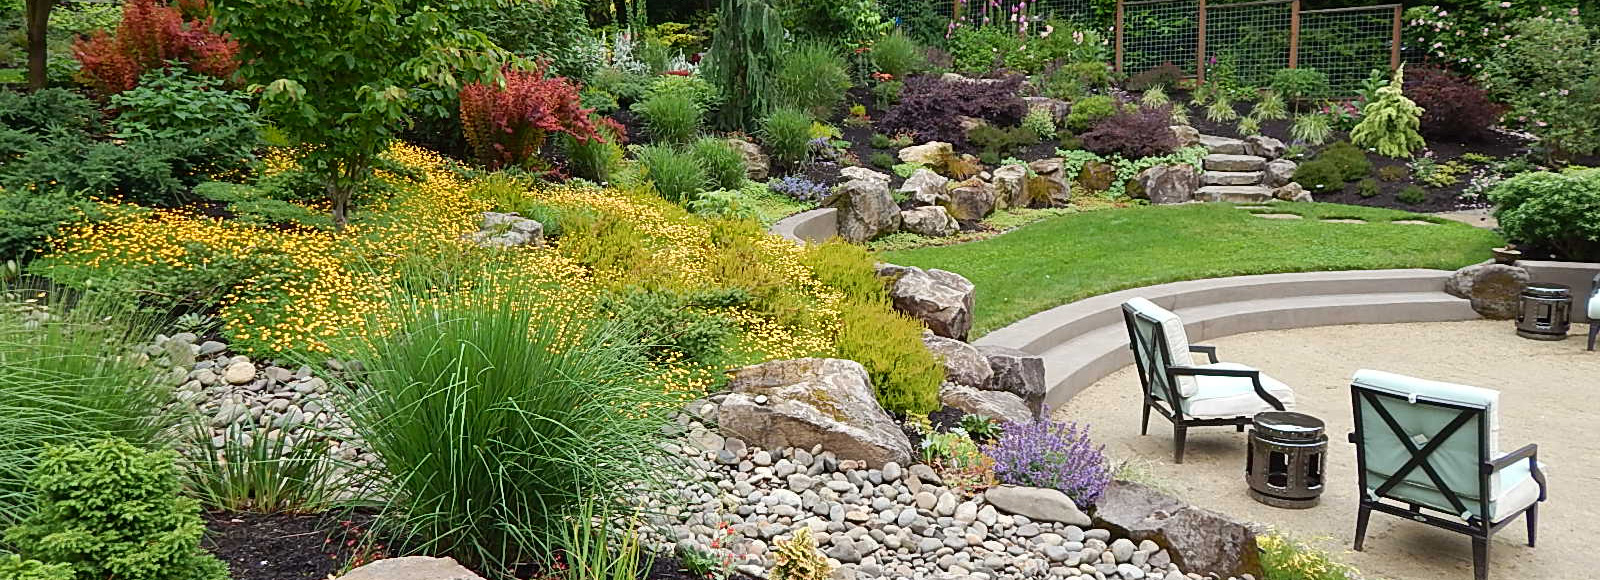 Lucy Hardiman And Perennial Partners | Garden Designer, Speaker, Writer |  Portland, Oregon